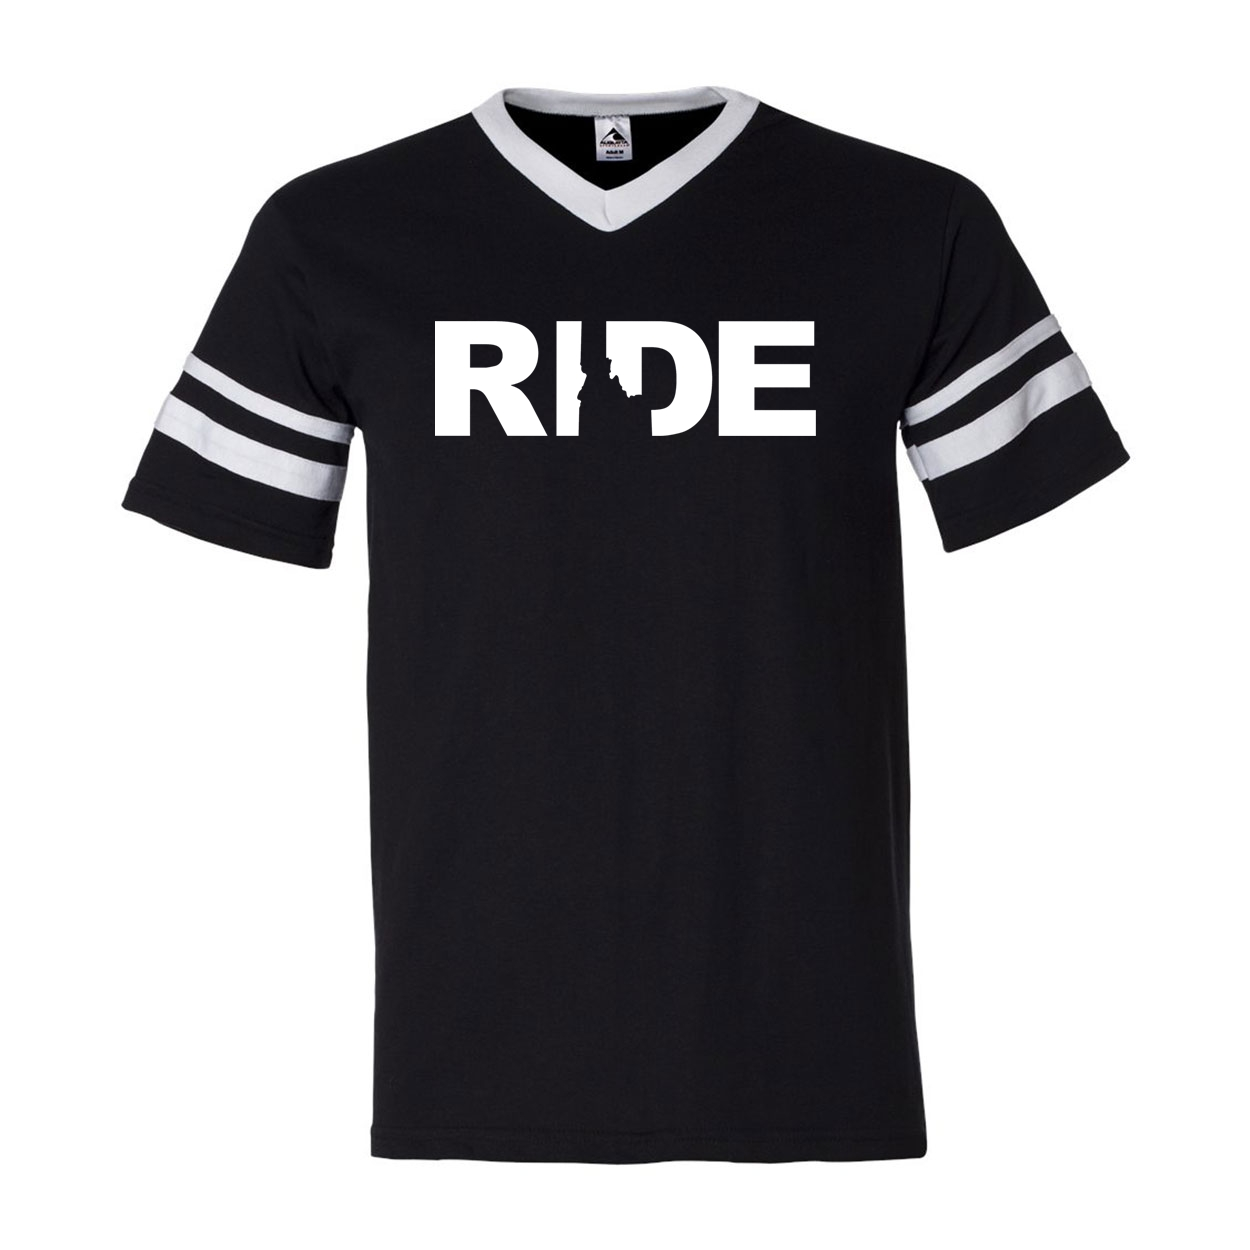 Ride Idaho Classic Premium Striped Jersey T-Shirt Black/White (White Logo)